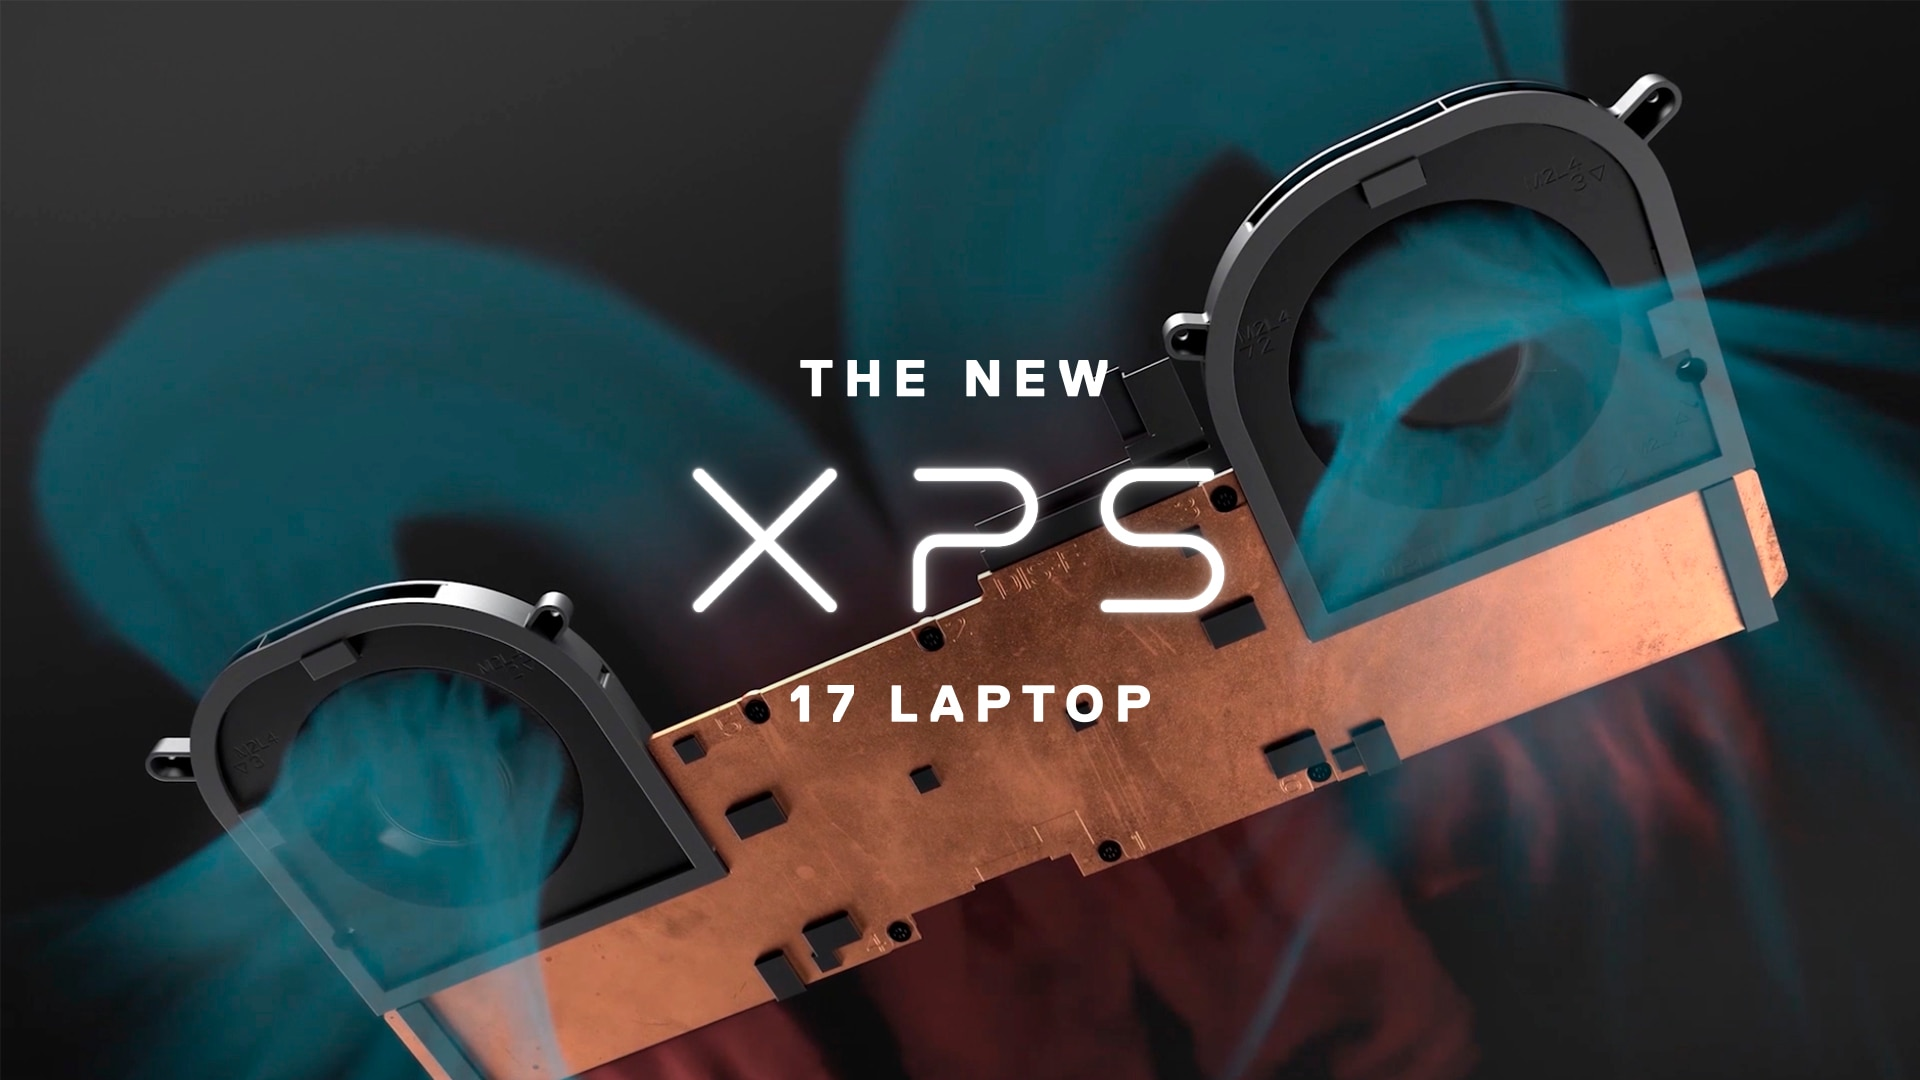 XPS 17 laptop (2020) spotlight 0:37